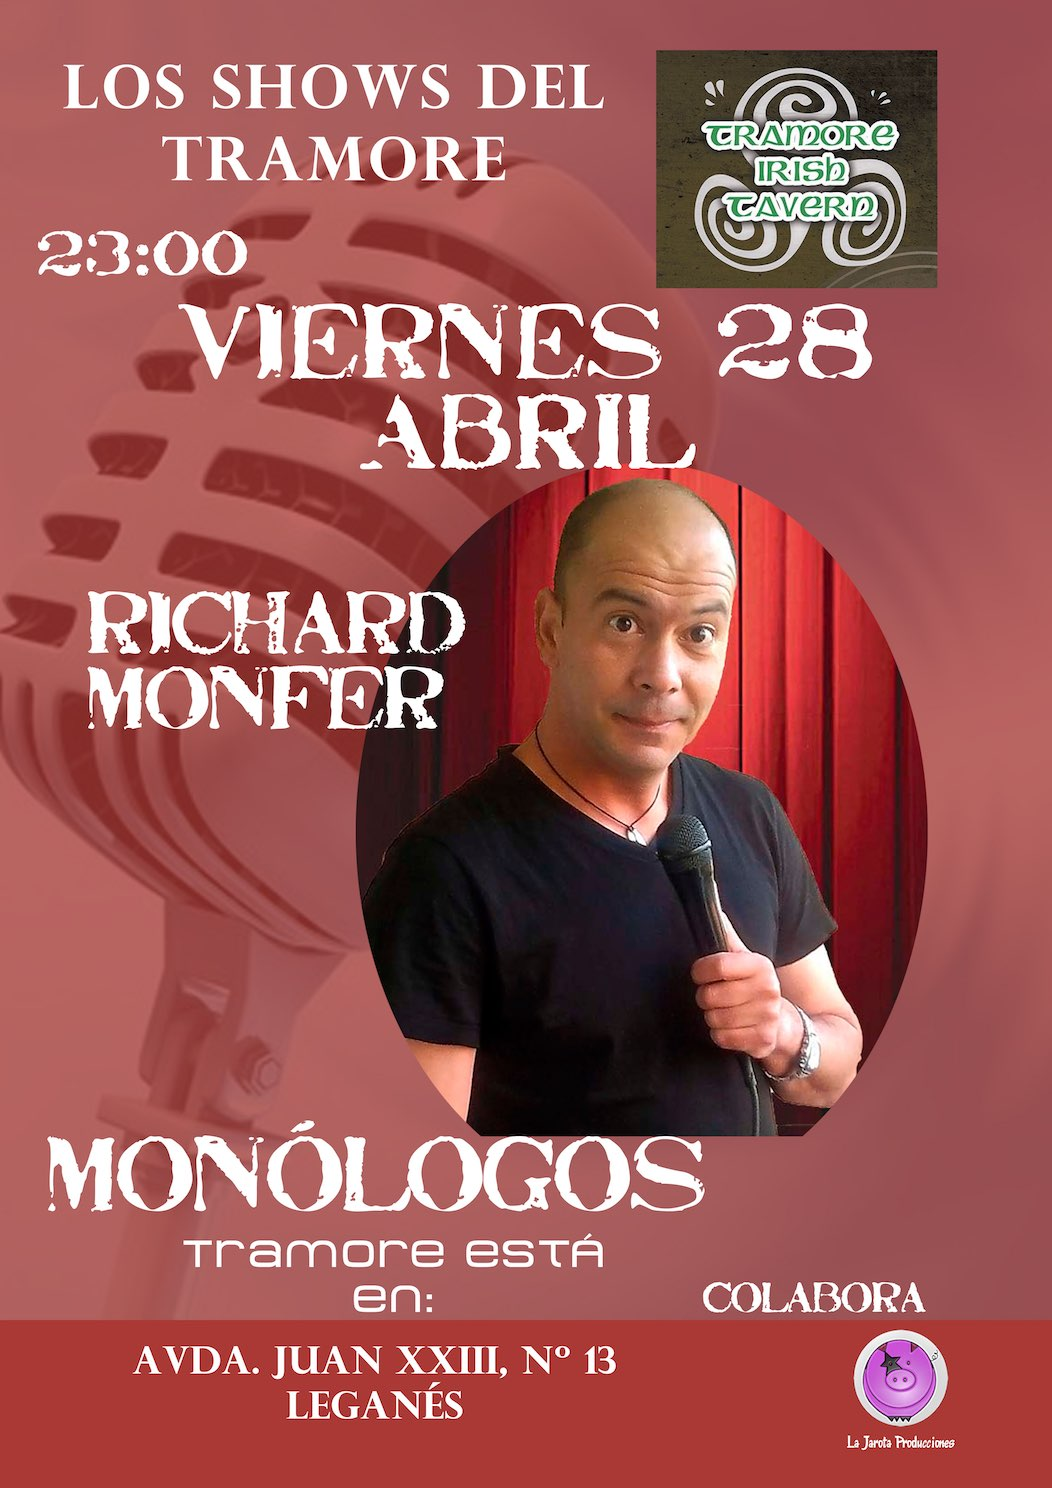 ¡Richard Monfer en Tramore Irish Tavern!